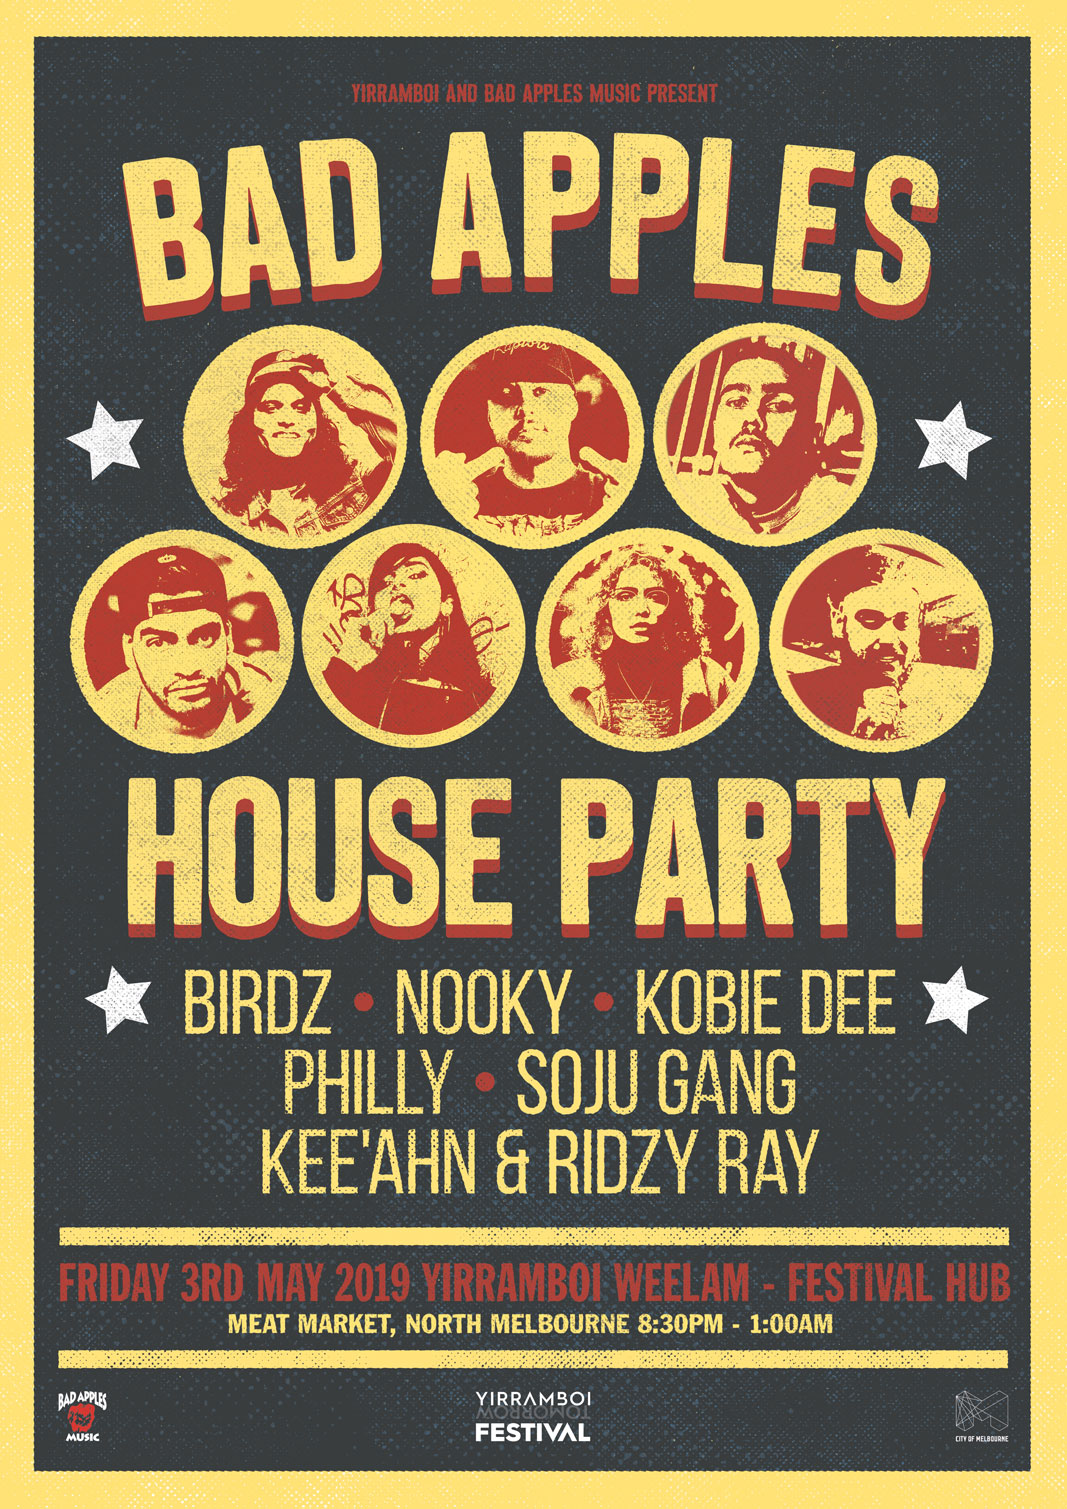 BAD APPLES HOUSE PARTY @ YIRRAMBOI FESTIVAL